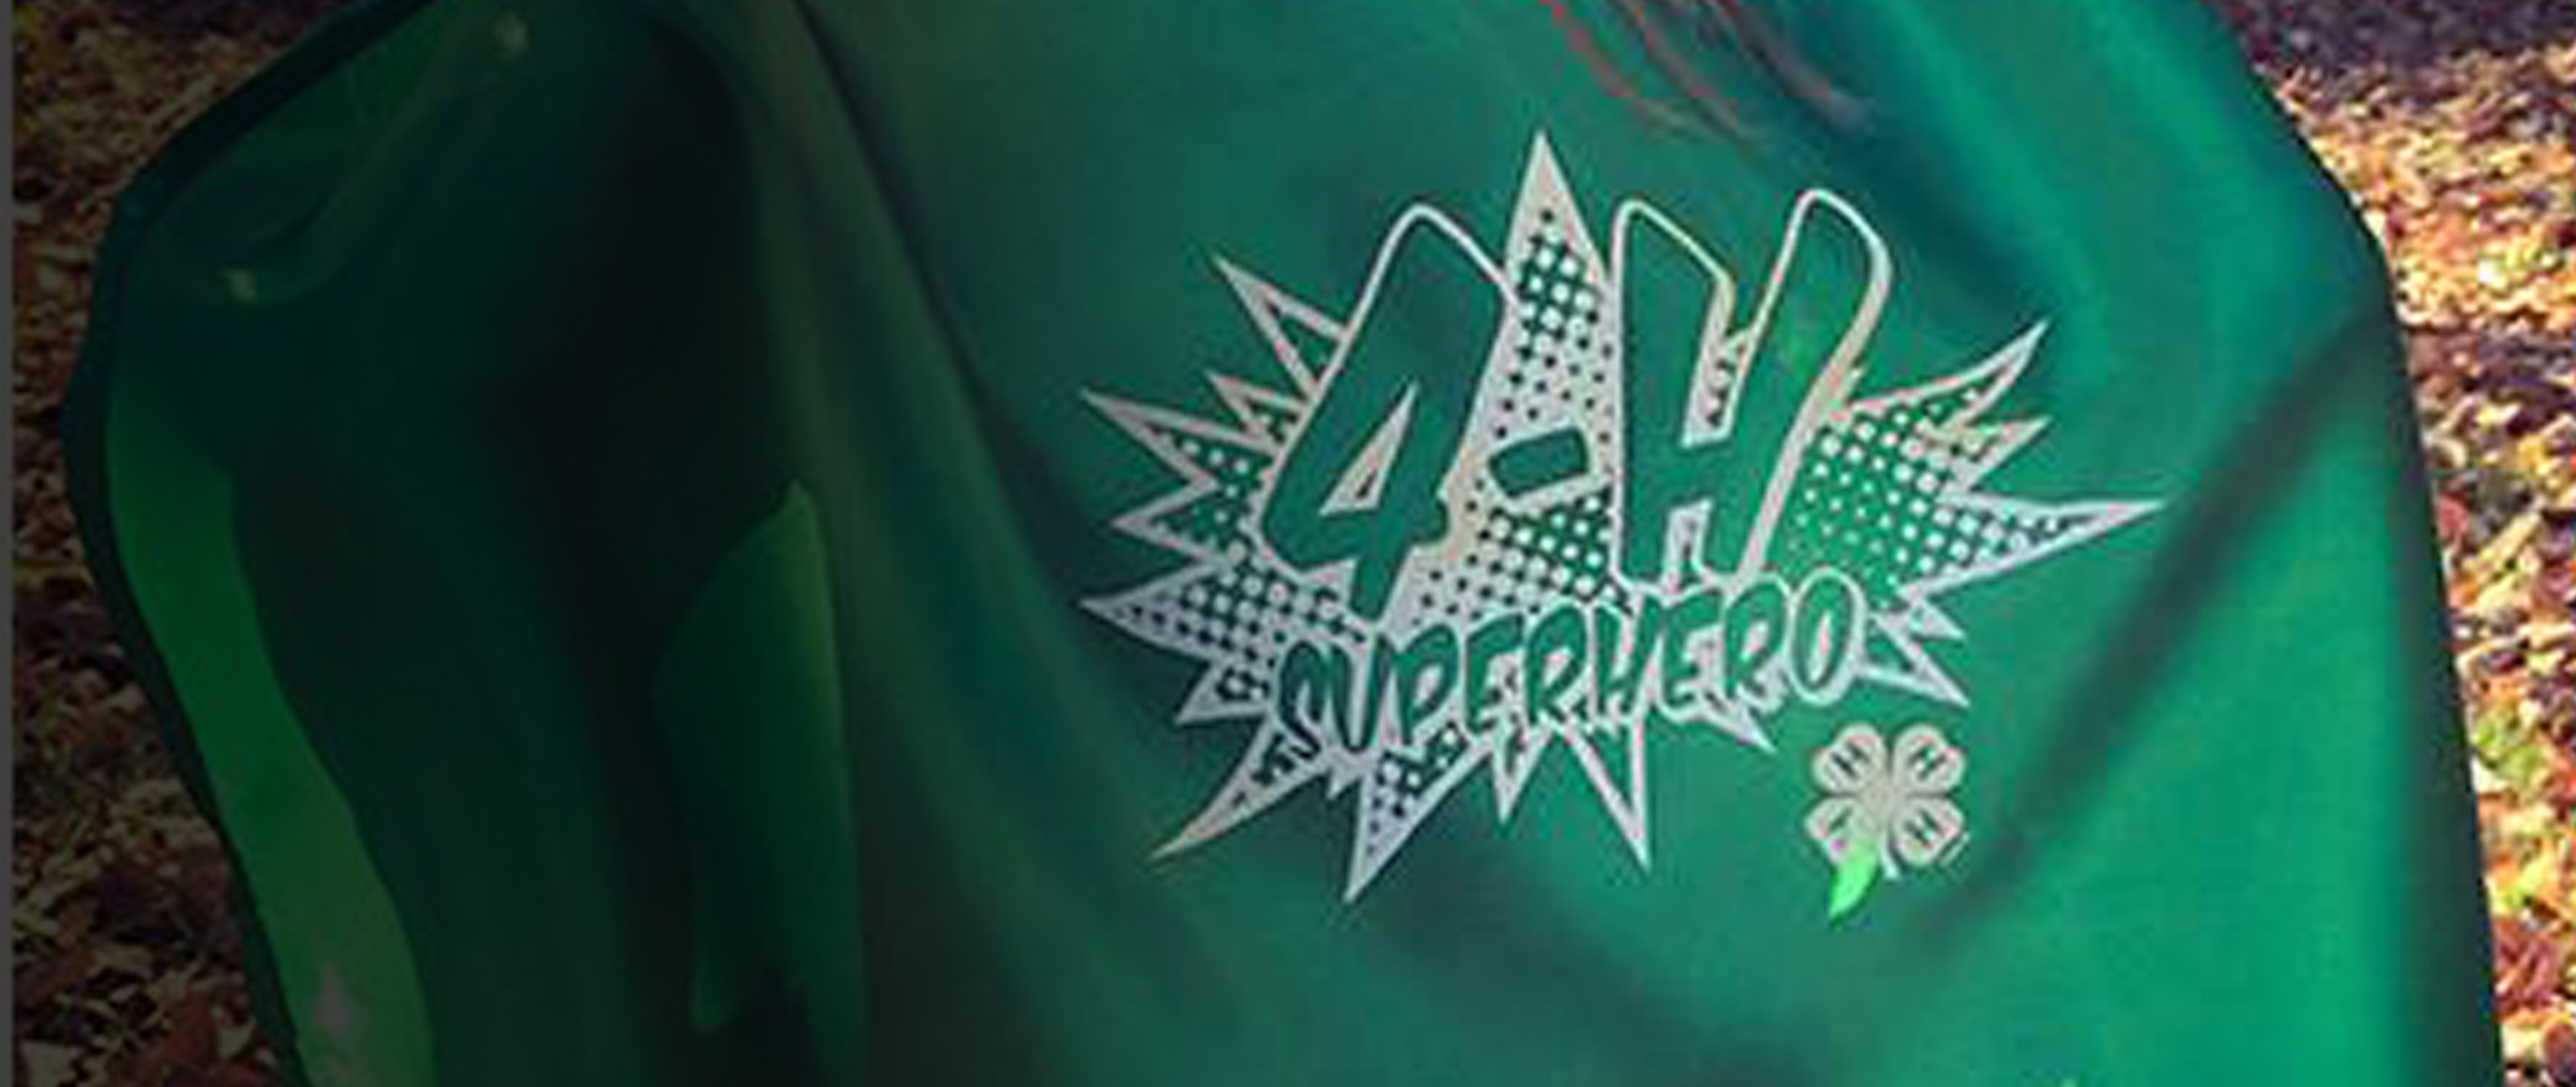 Be a 4-H superhero!